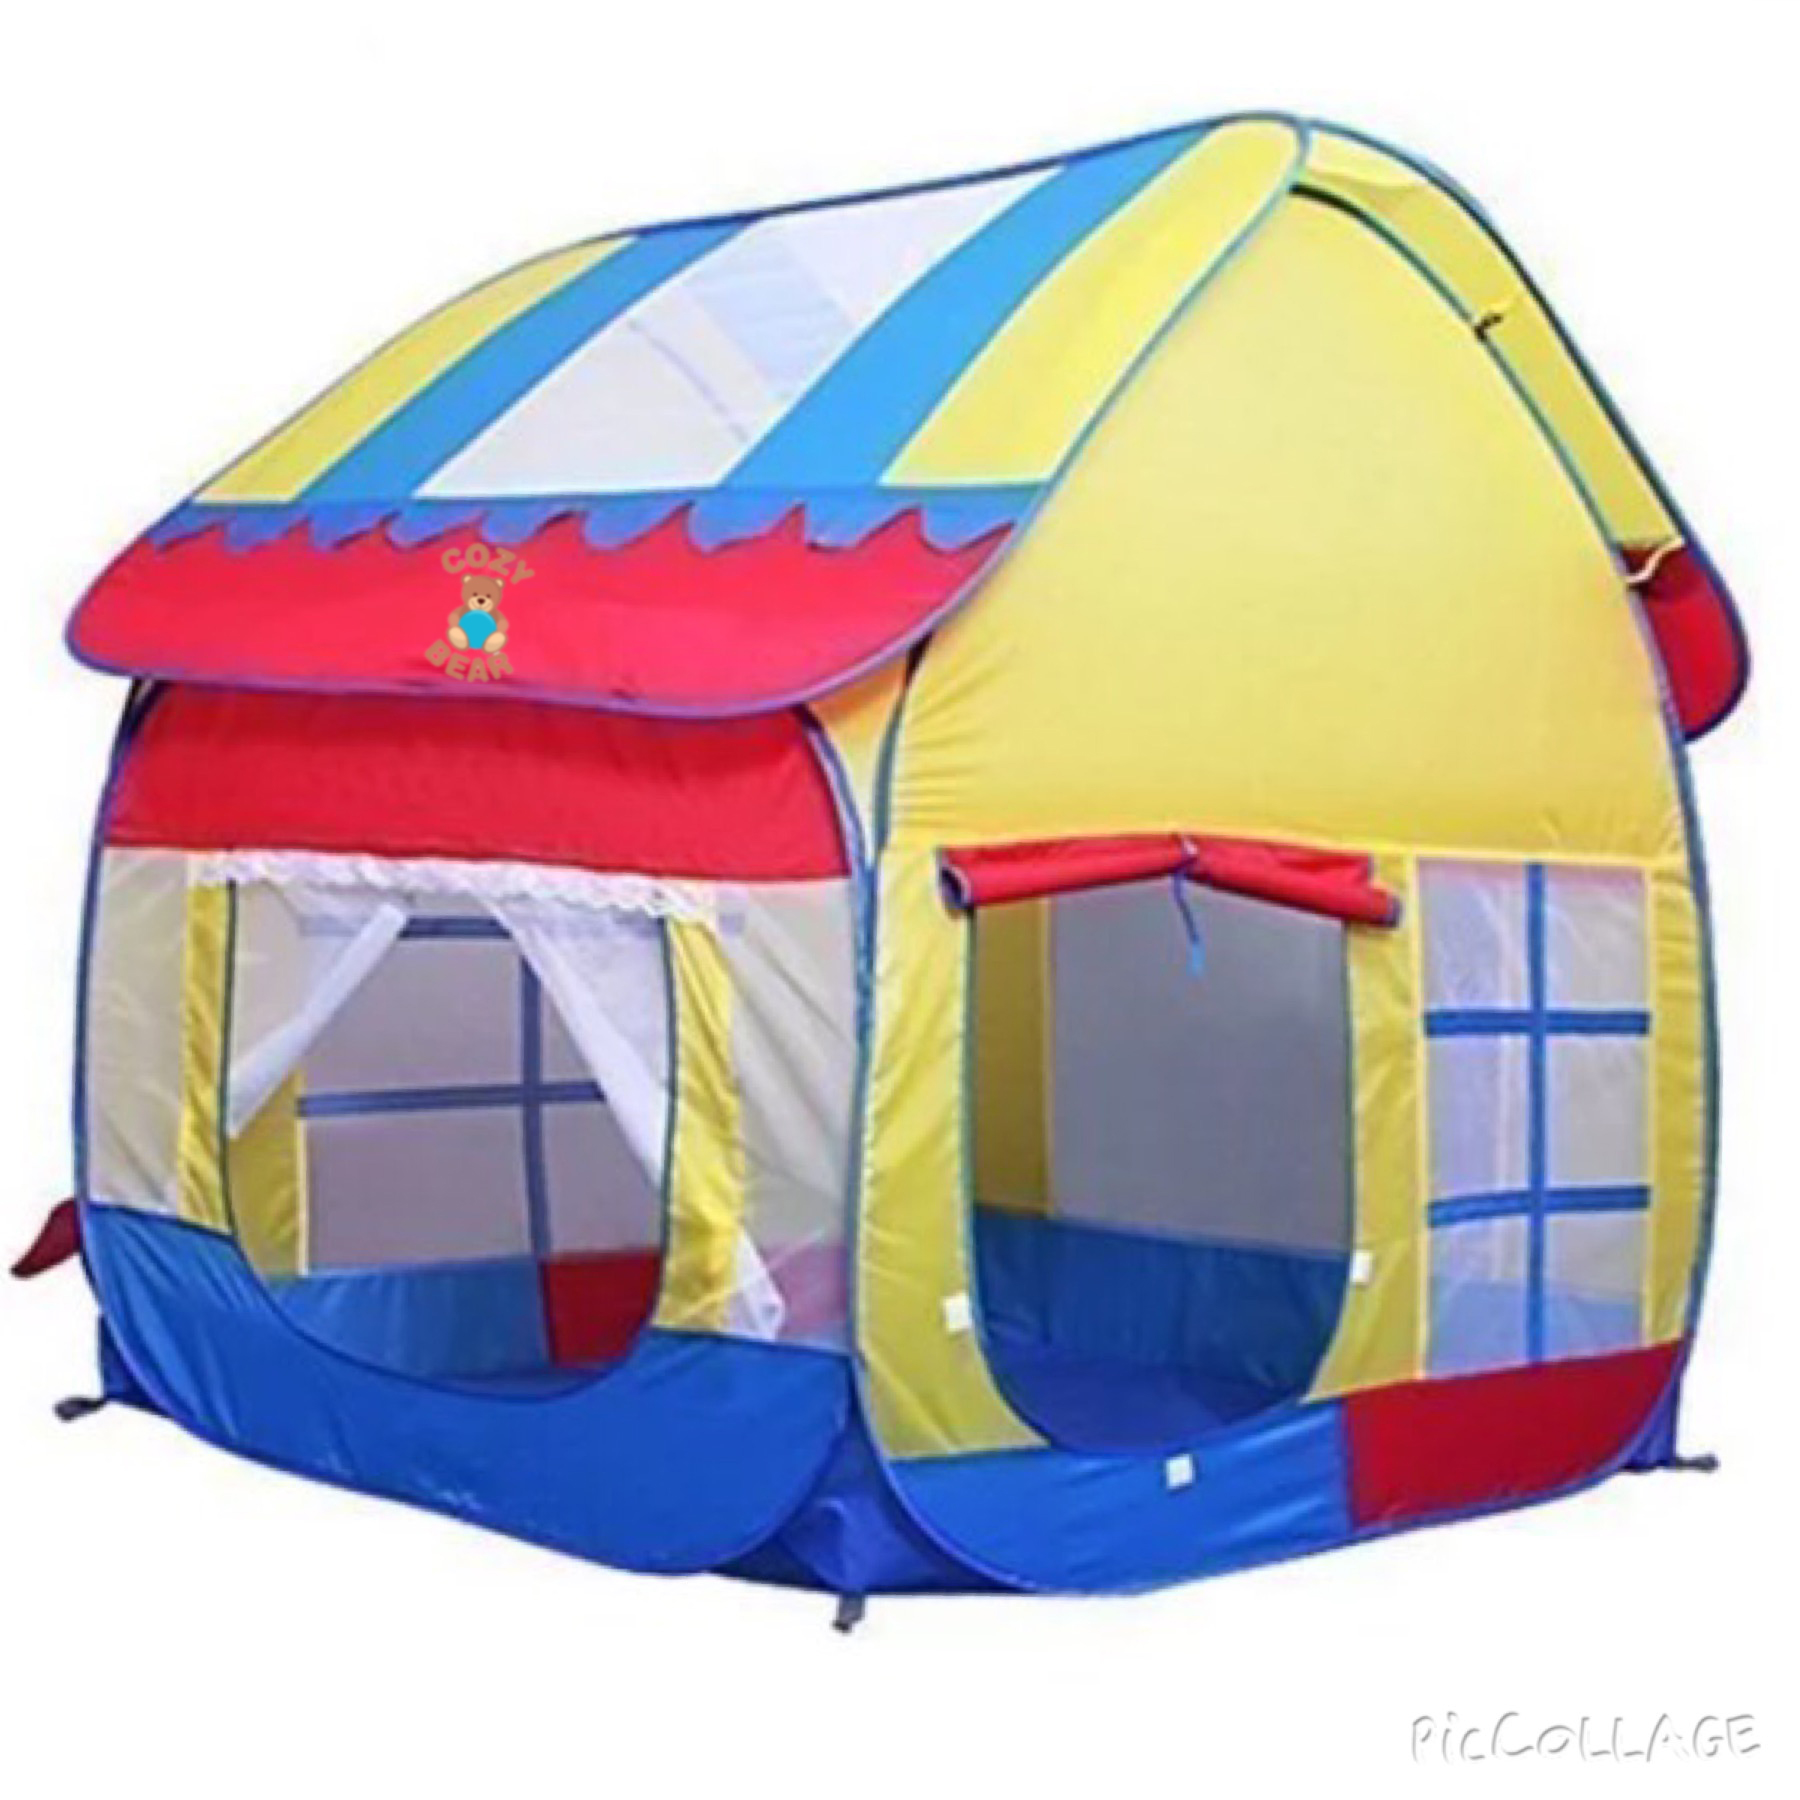 ... Large Play Tent Playhouse. main product page picture  sc 1 st  Plush Island & Cozy Bear Kids Outdoor/Indoor Large Play Tent Playhouse u2013 Plush Island